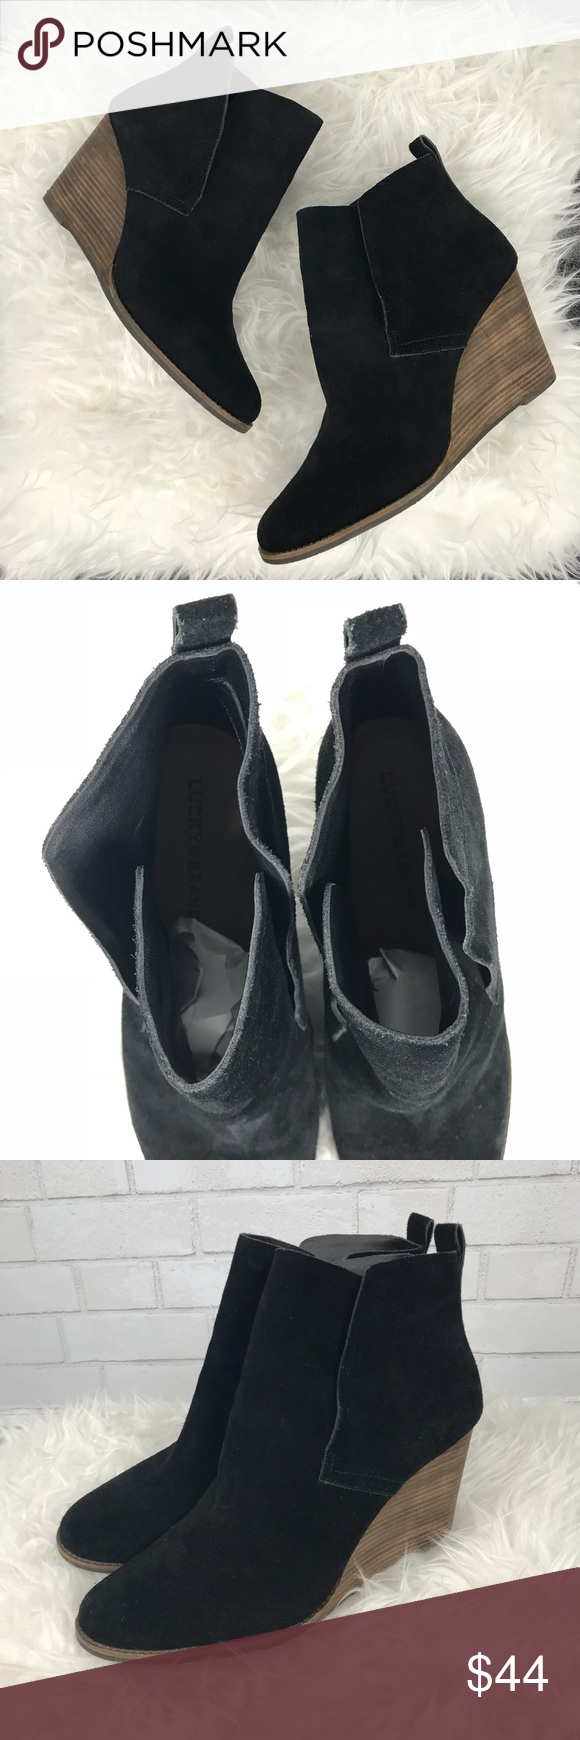 46d0287e5de0 Lucky Brand Yoniana Black Suede Wedge Booties Excellent condition Lucky  Brand Yoniana Wedge Booties. Black